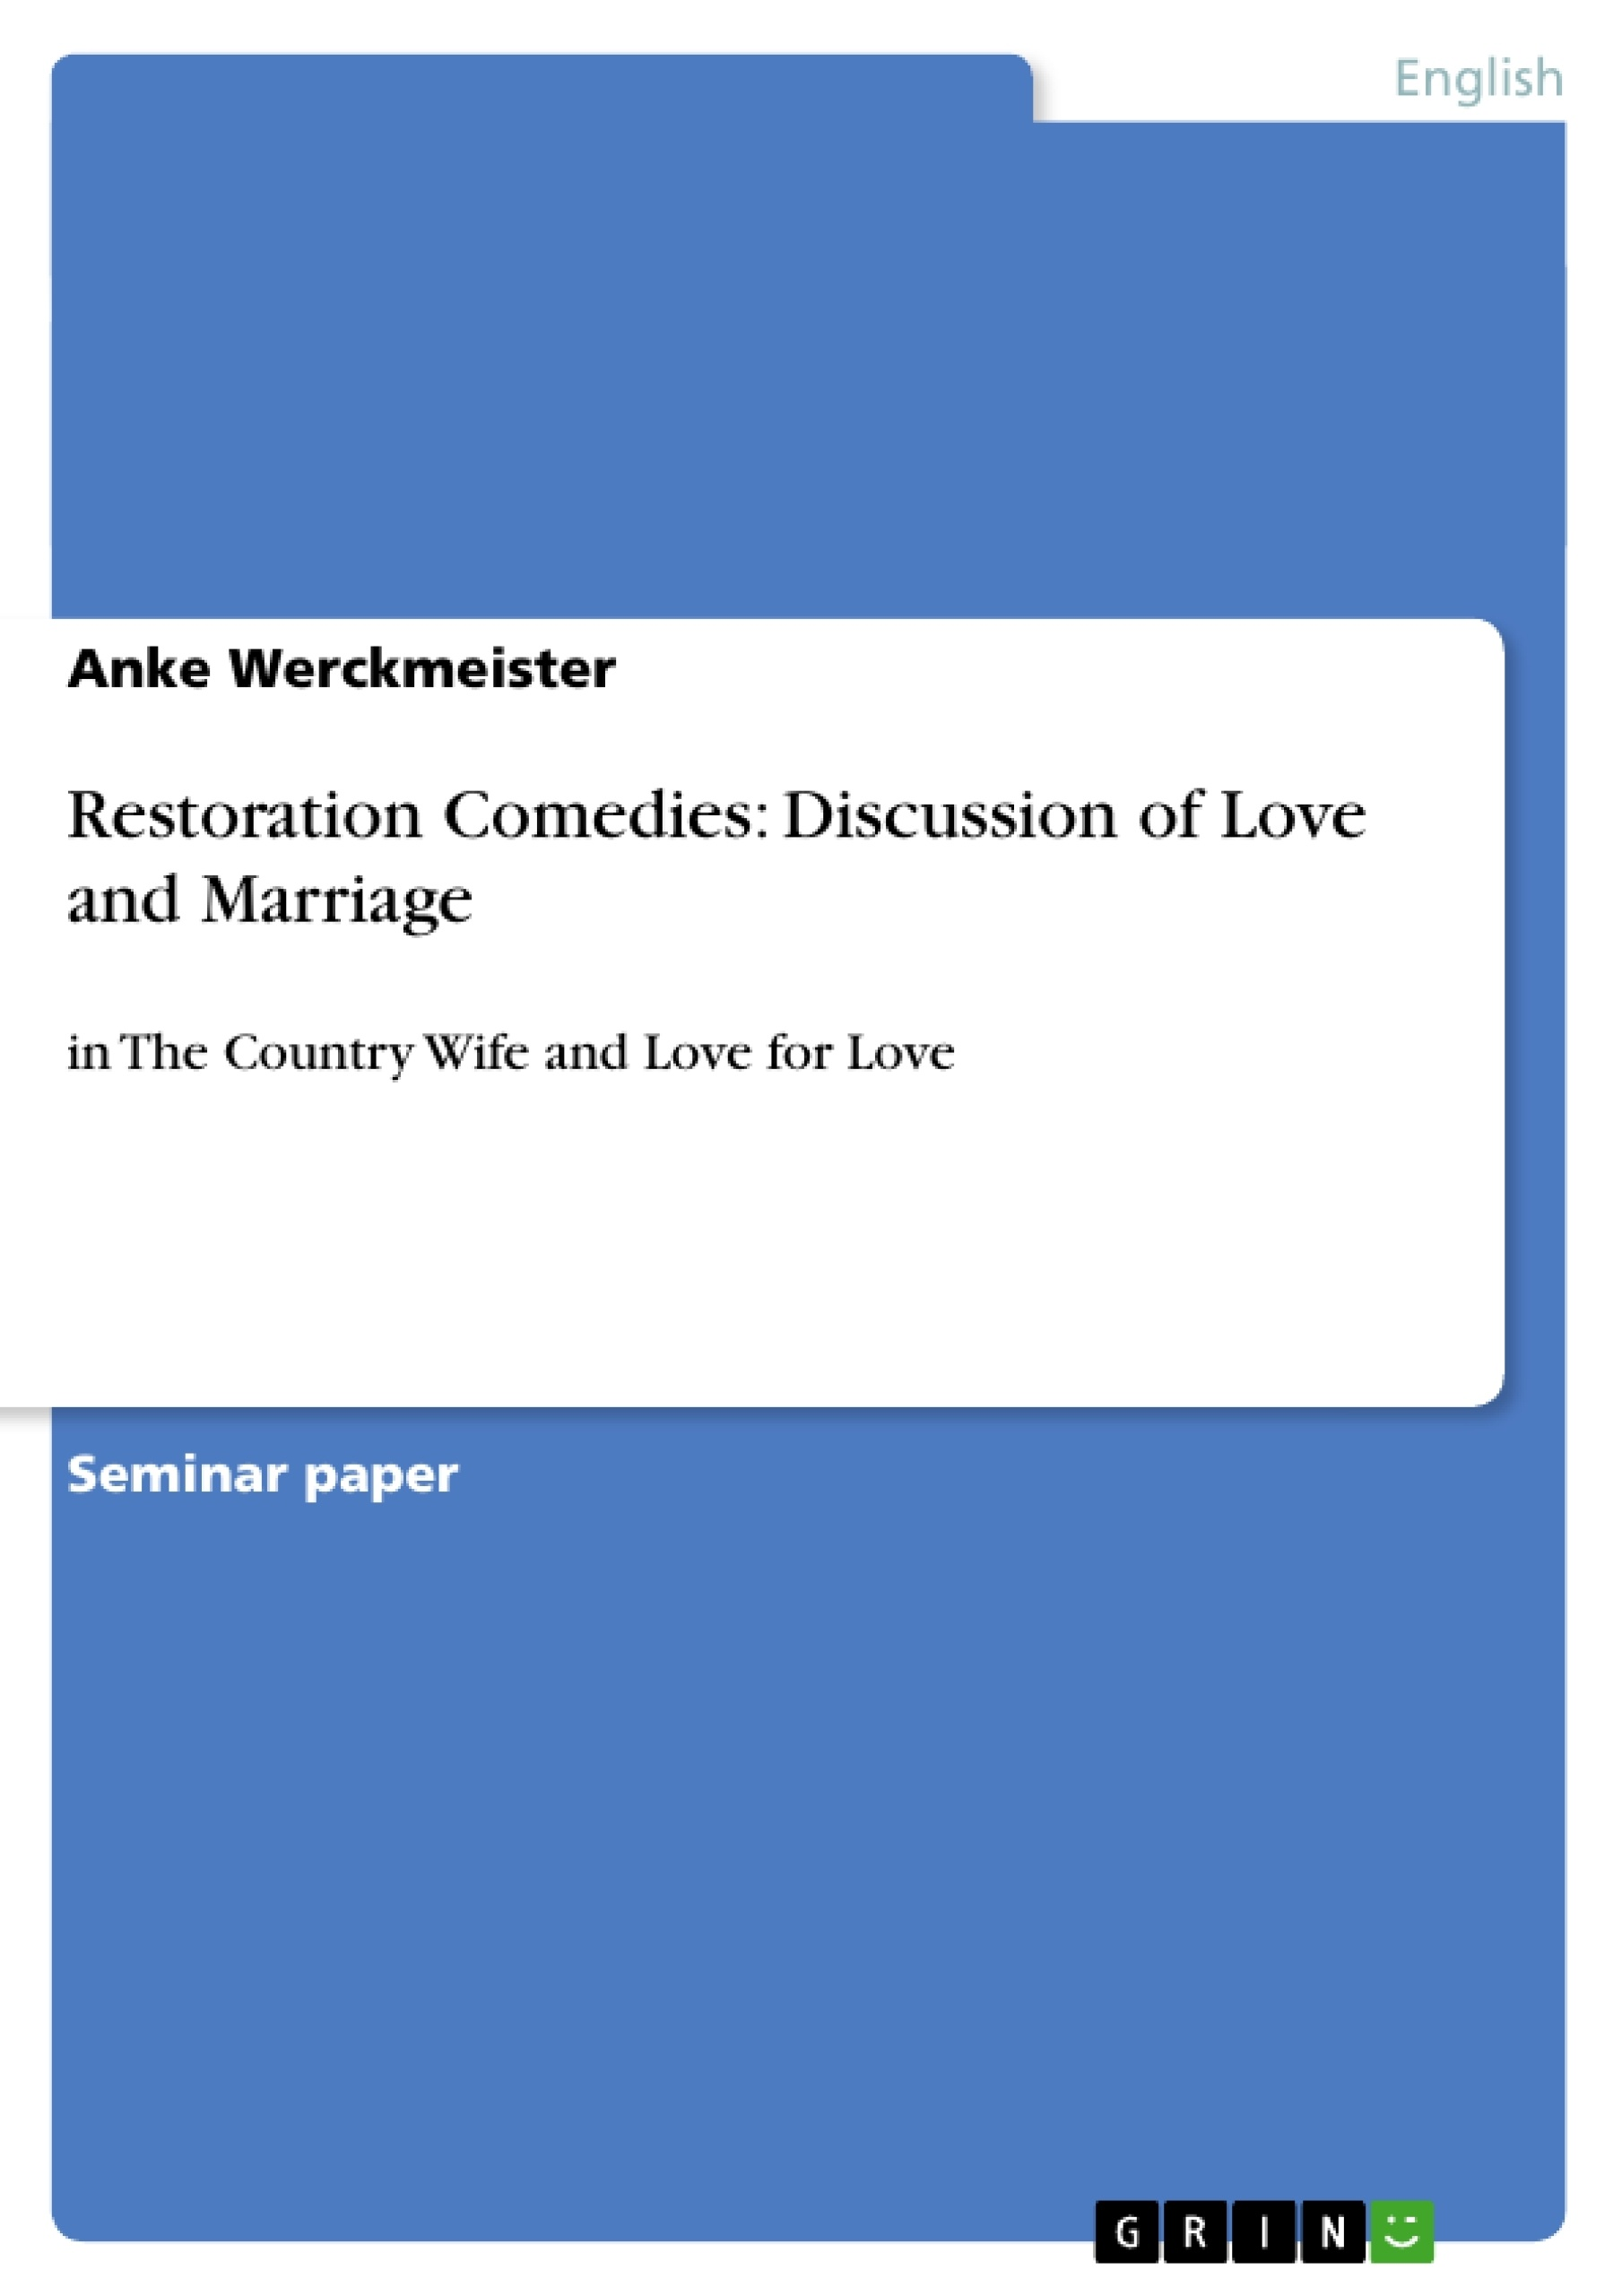 Title: Restoration Comedies: Discussion of Love and Marriage